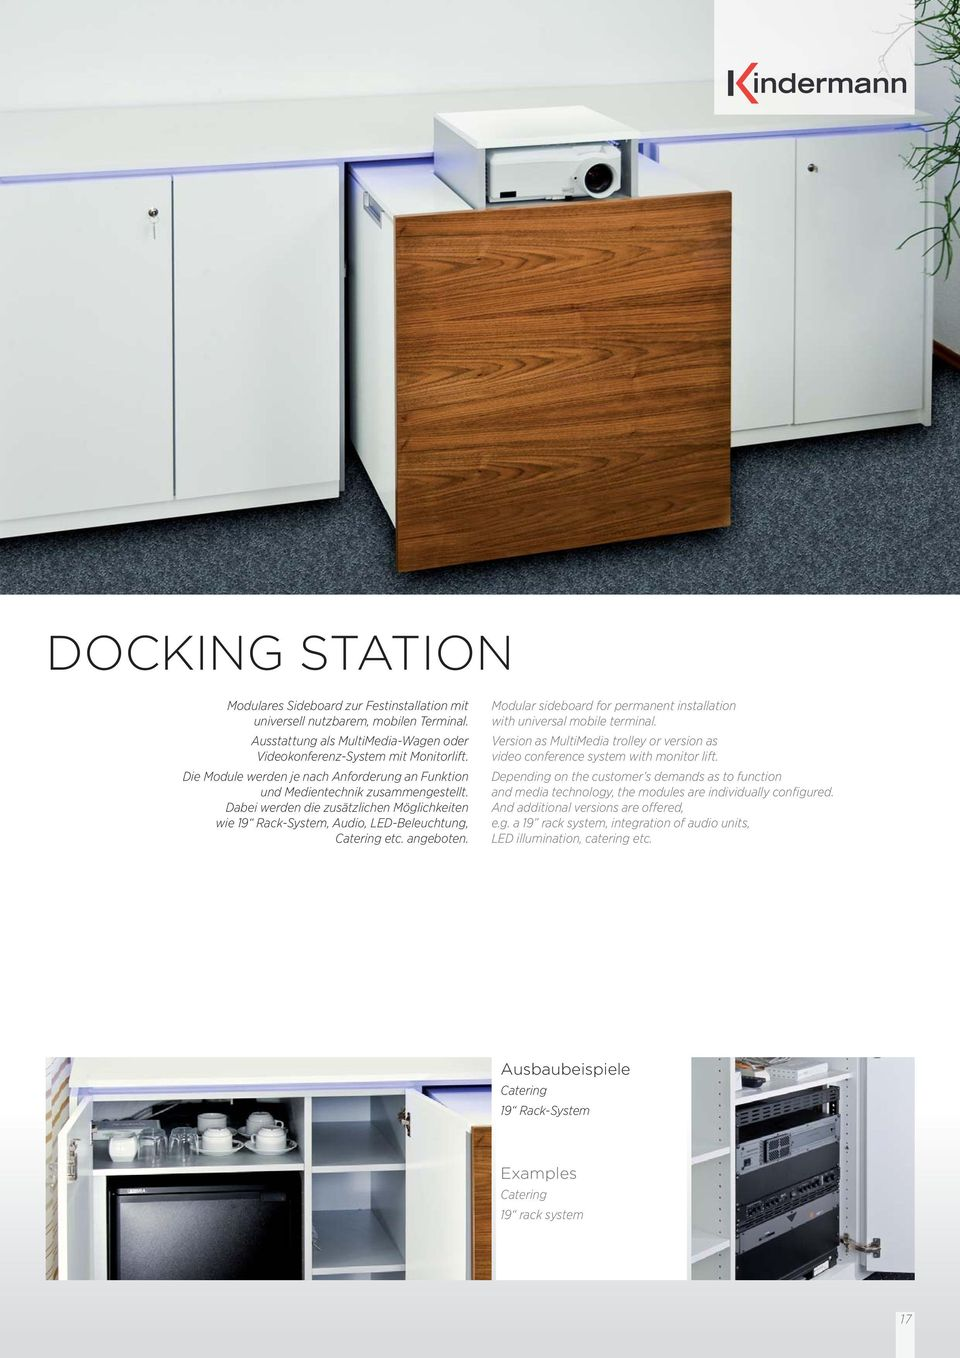 Modular sideboard for permanent installation with universal mobile terminal. Version as MultiMedia trolley or version as video conference system with monitor lift.